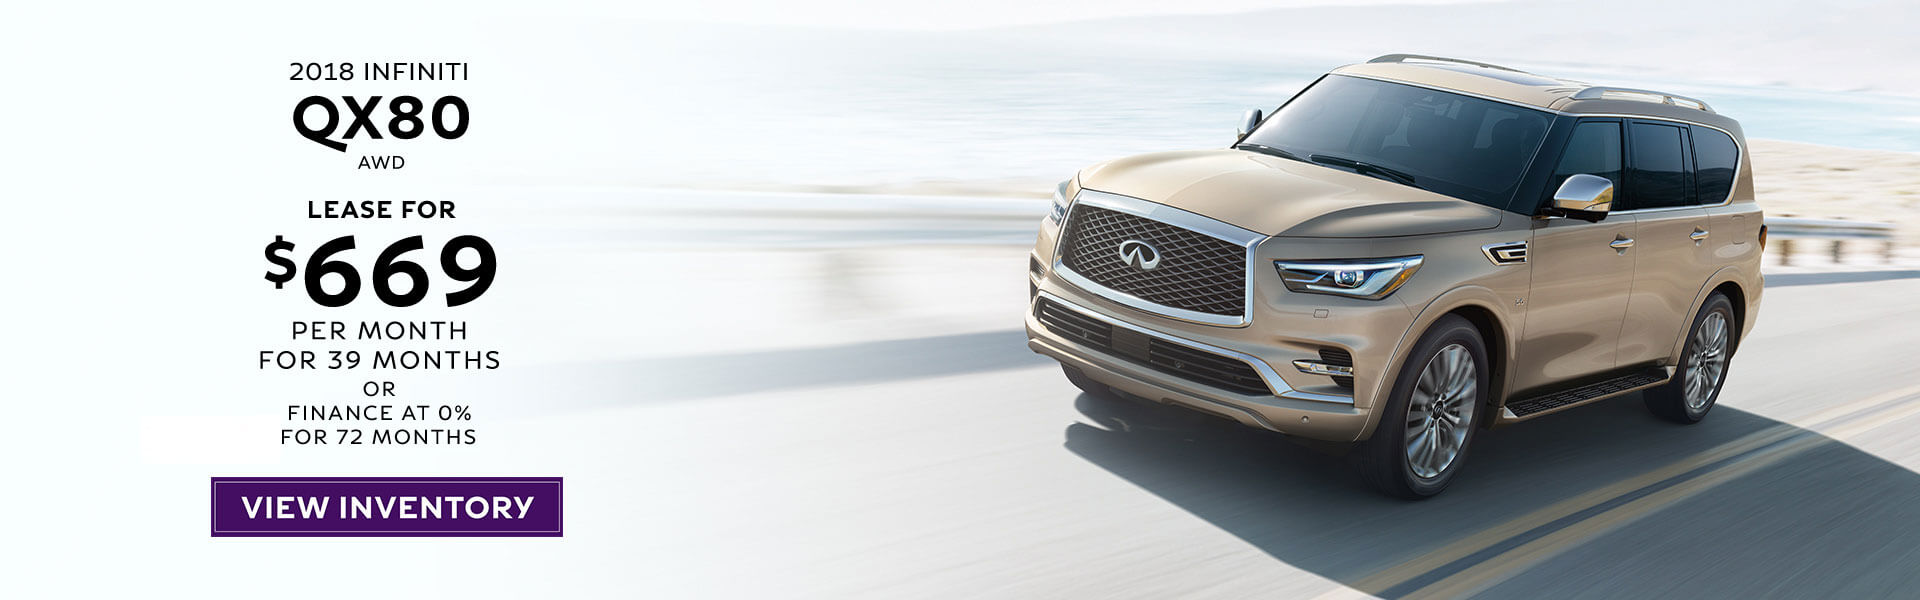 2018 QX80 Lease Offer